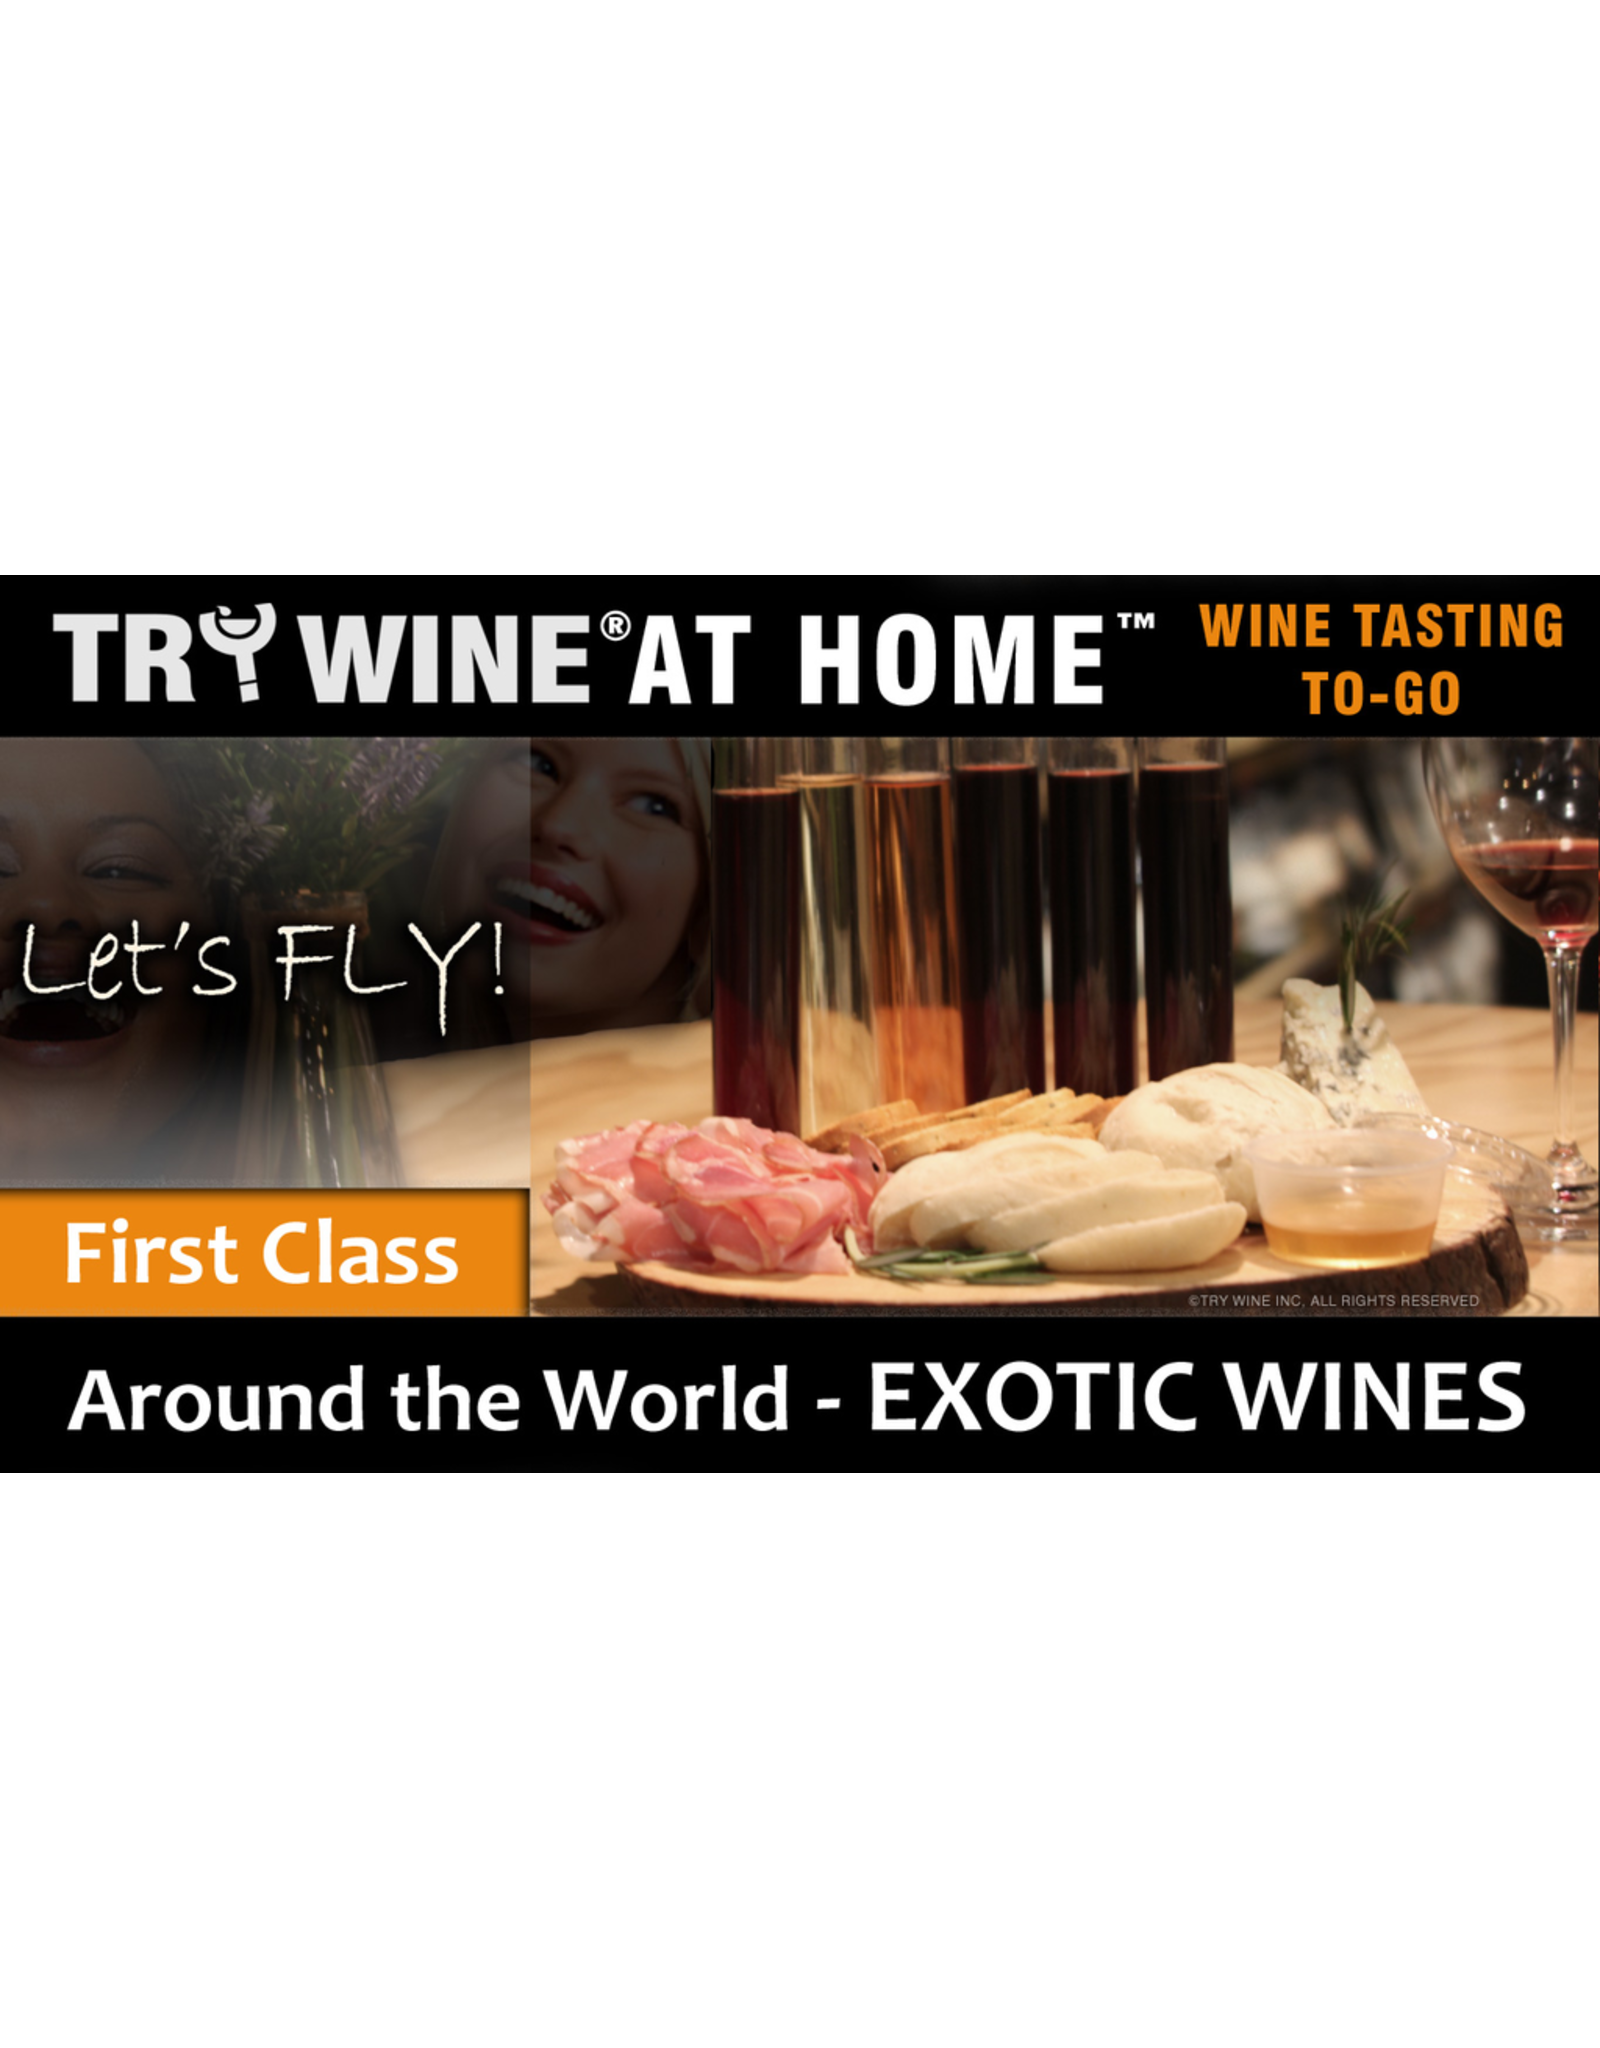 """Wine Flights TO-GO TRY WINE® AT HOME™, Around the World """"Exotic Wines"""" FIRST CLASS TASTE TUBE FLIGHT™"""